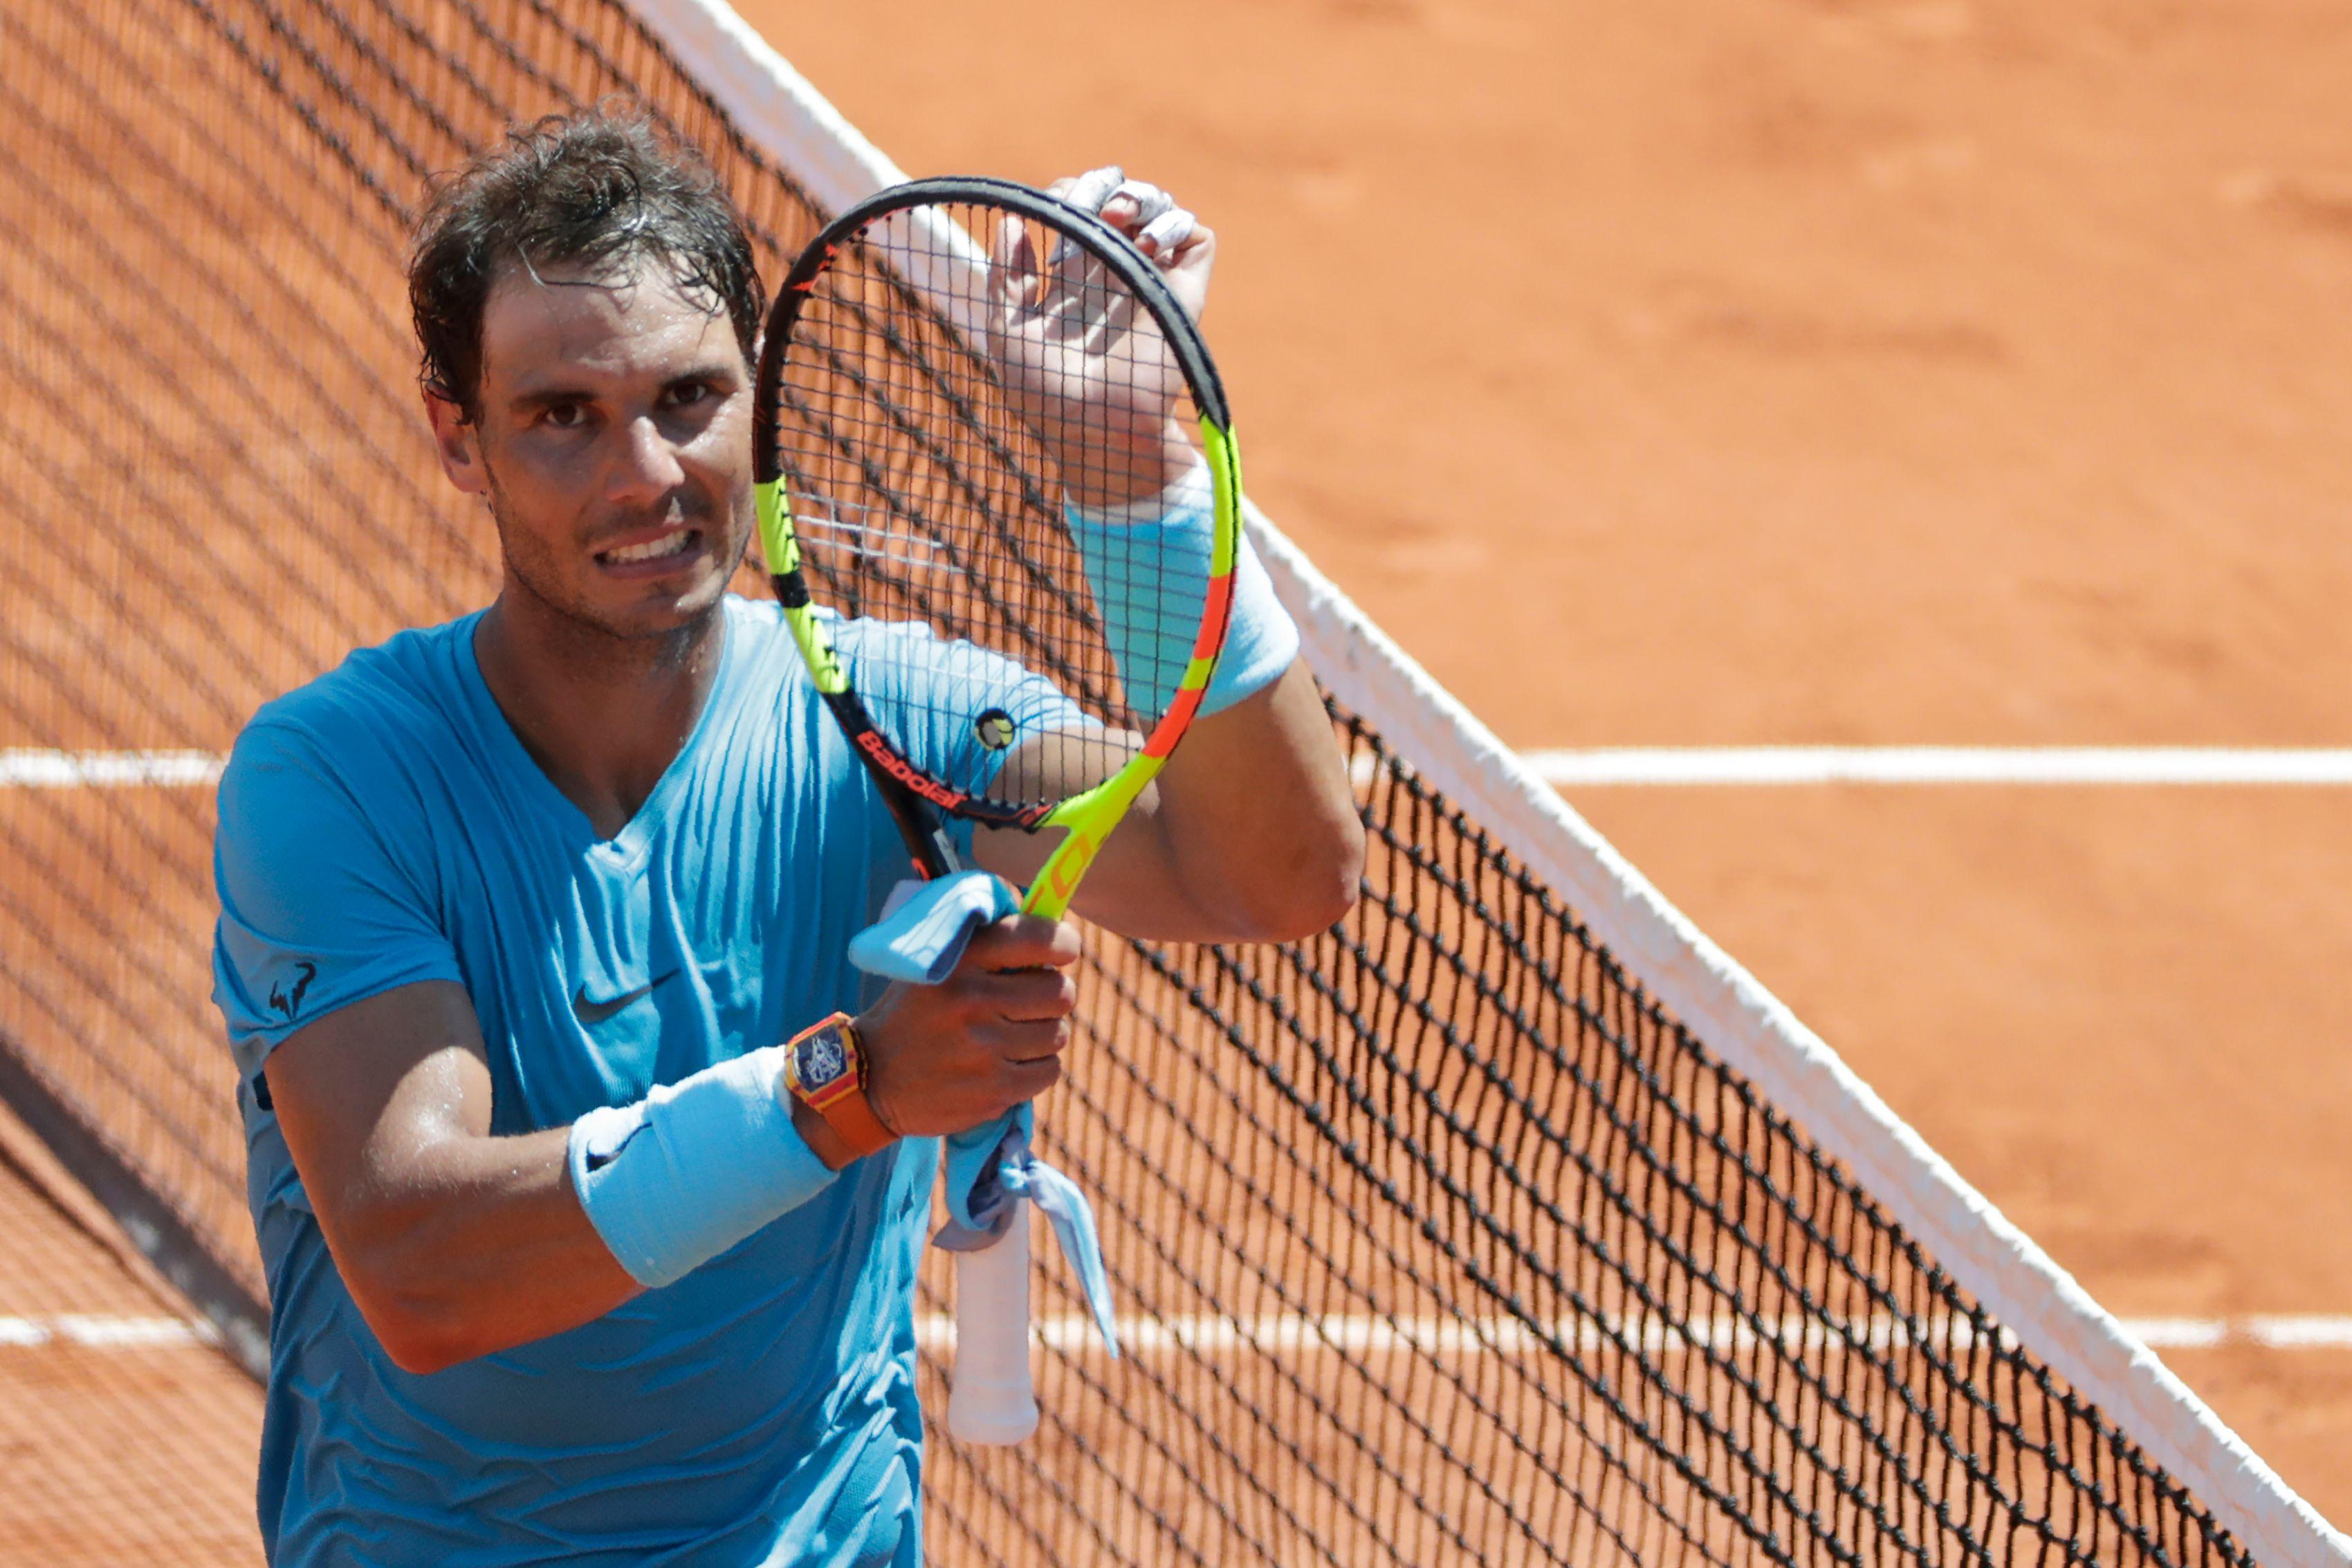 Nadal secures 11th French Open despite late injury scare